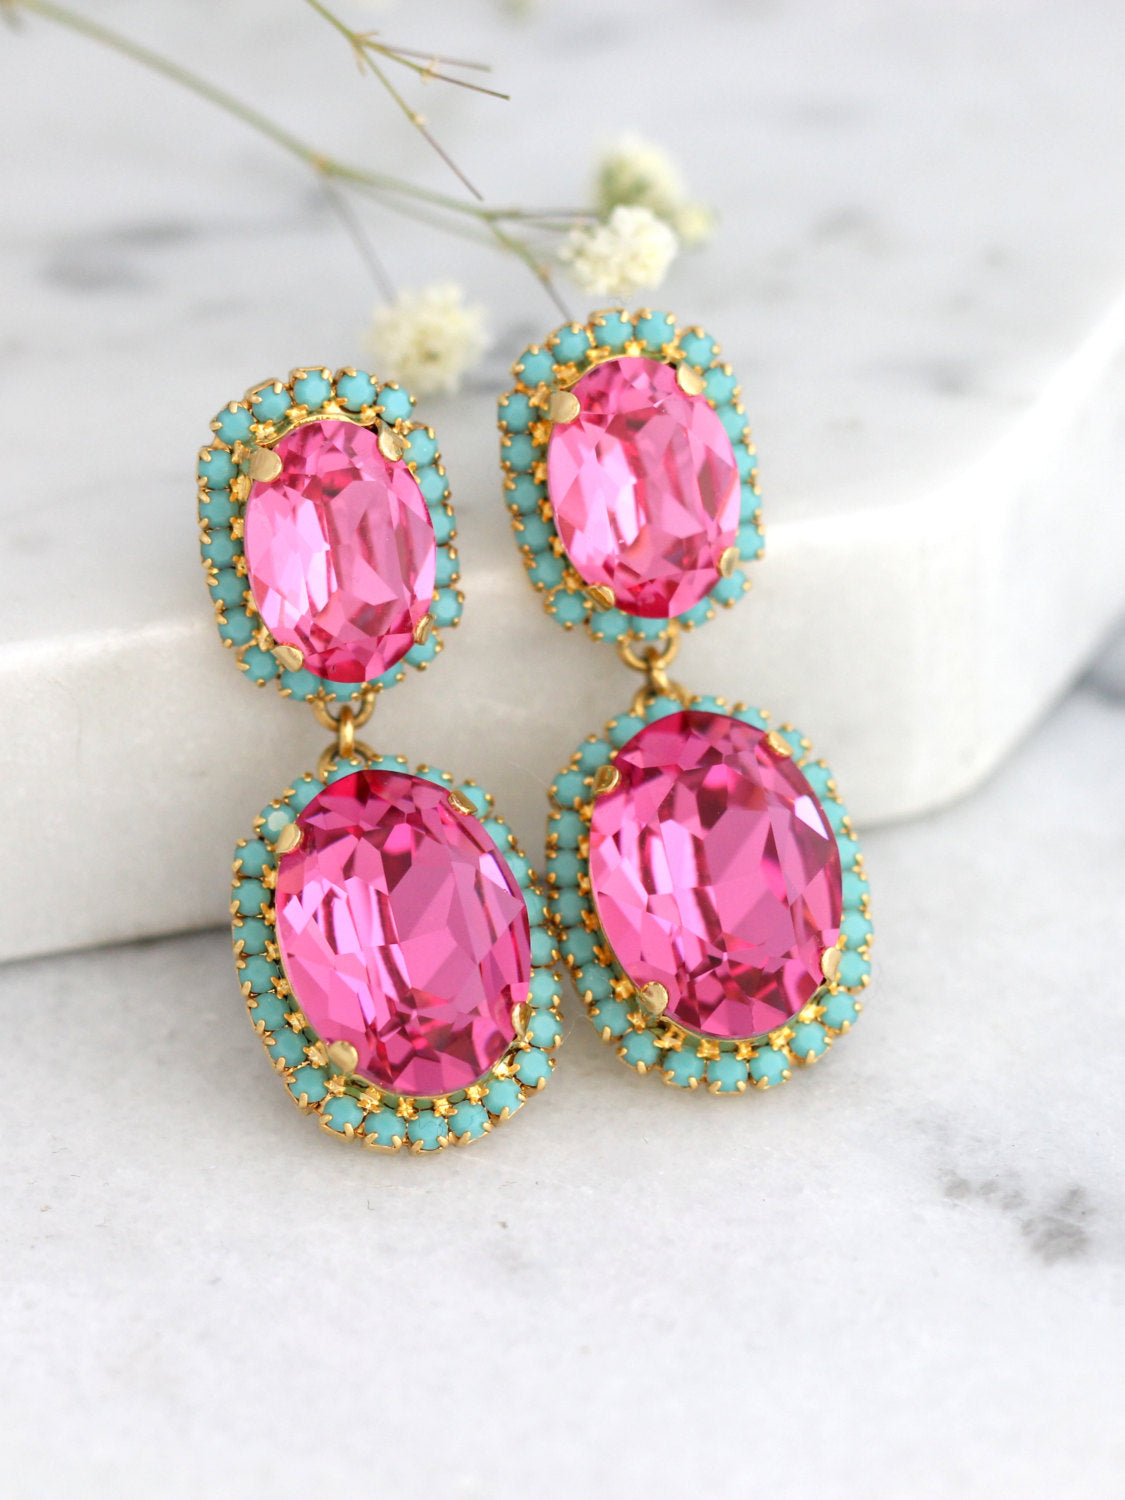 Kara Pink Turquoise Crystal Swarovski Chandelier Earrings